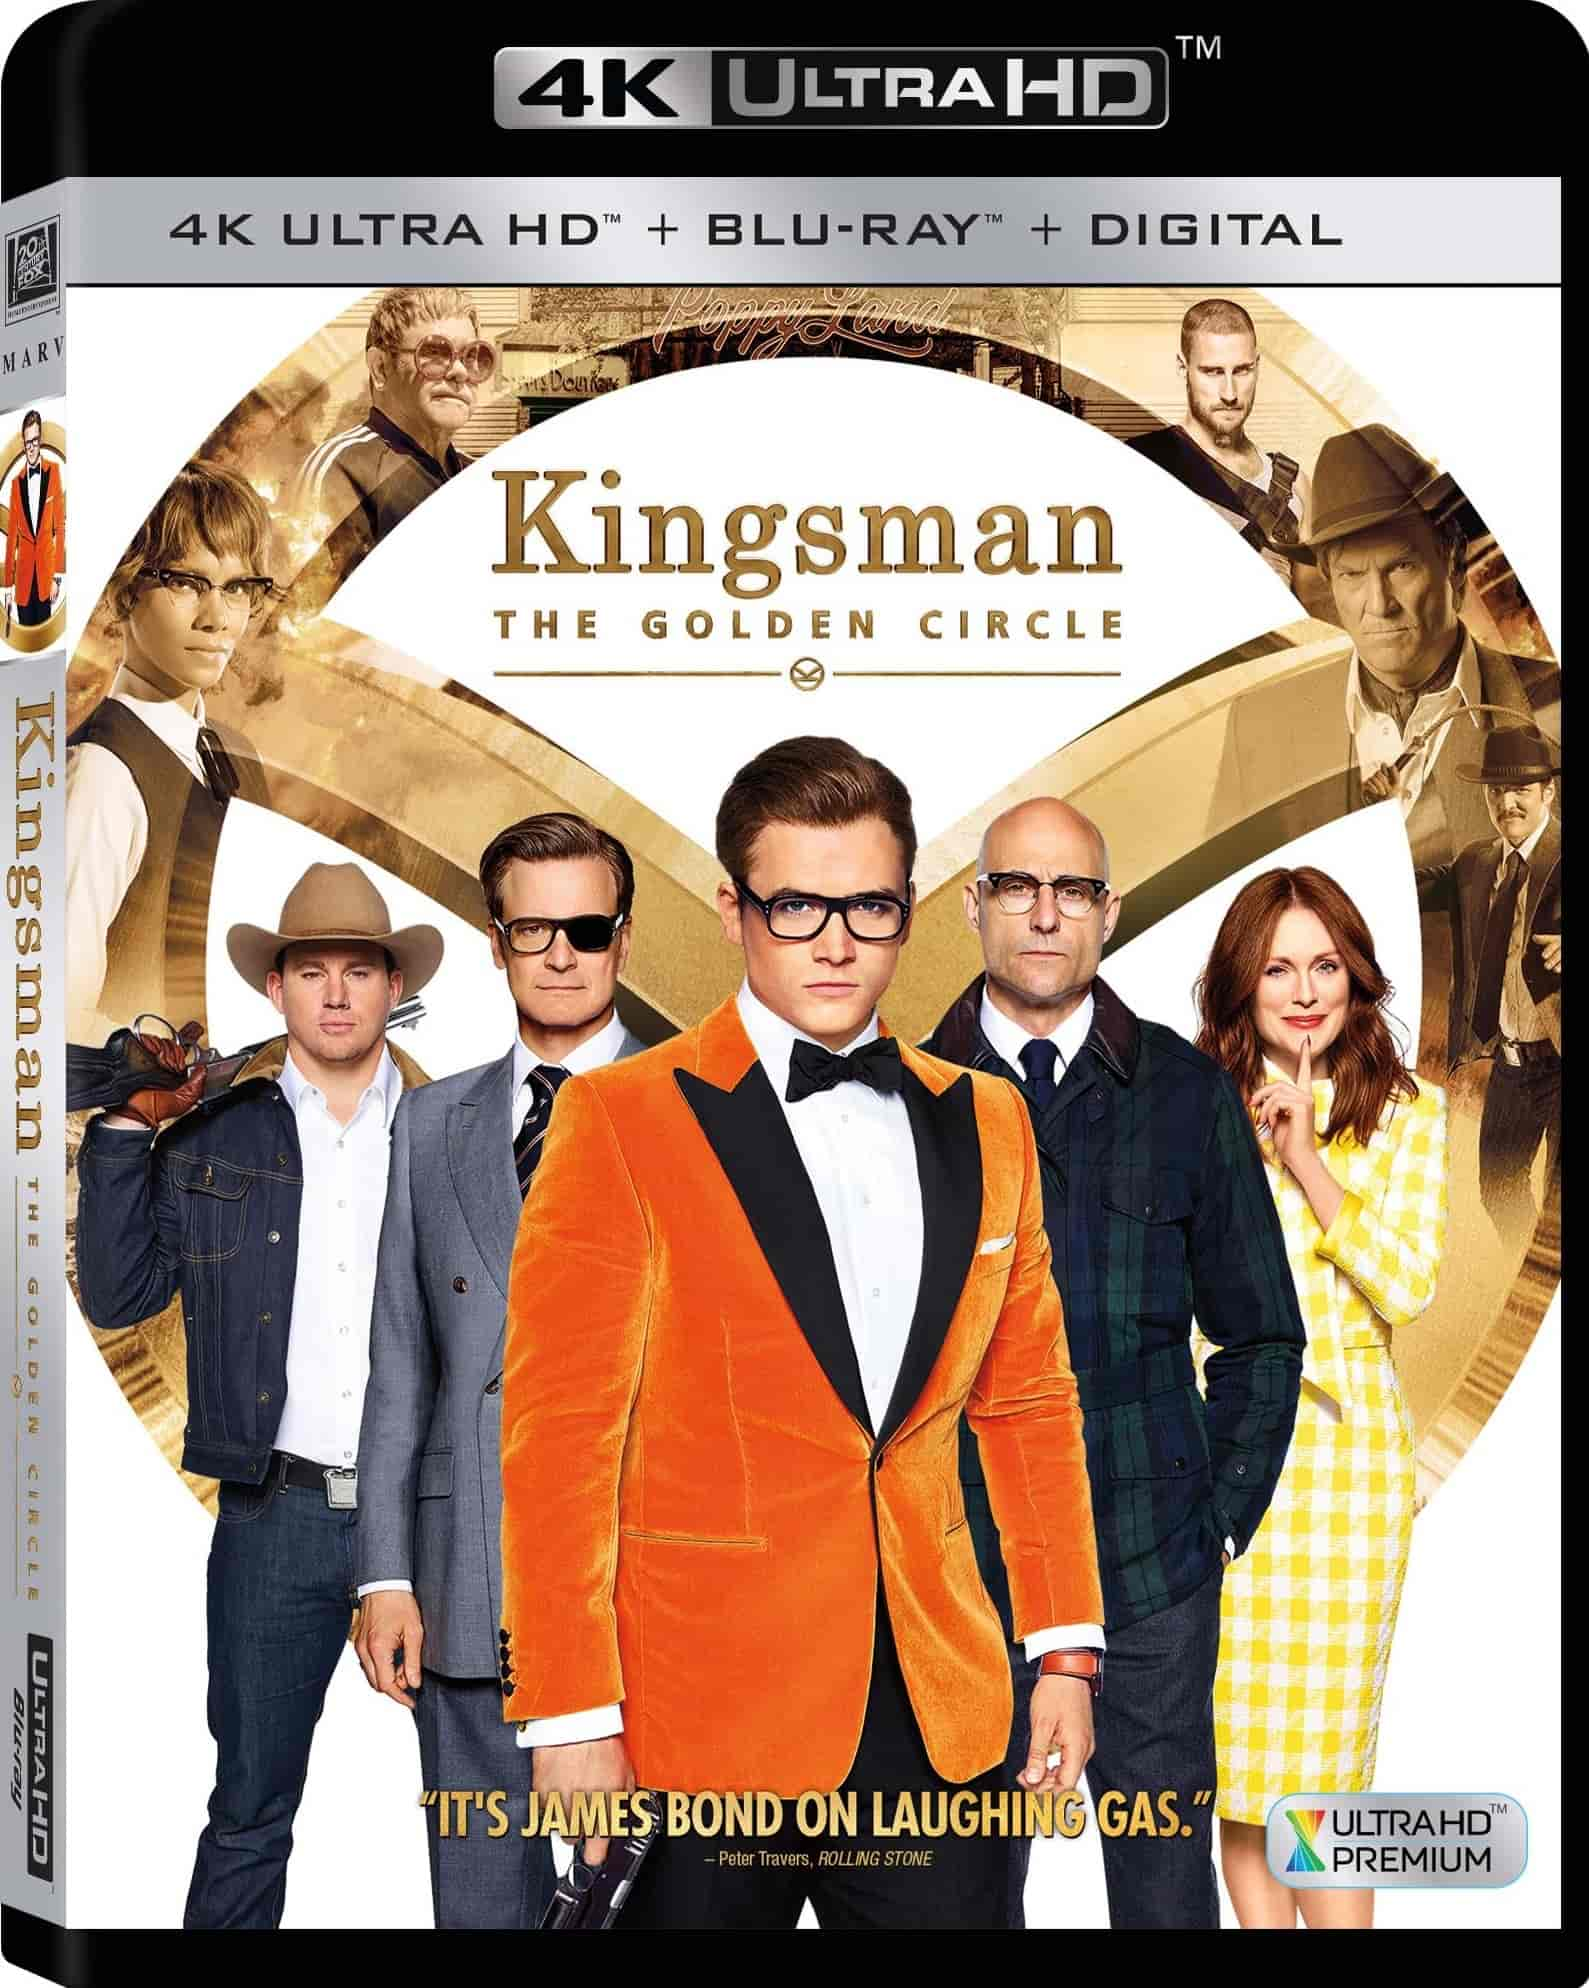 Kingsman: The Golden Circle 4K RIP 2017 HDR Ultra HD